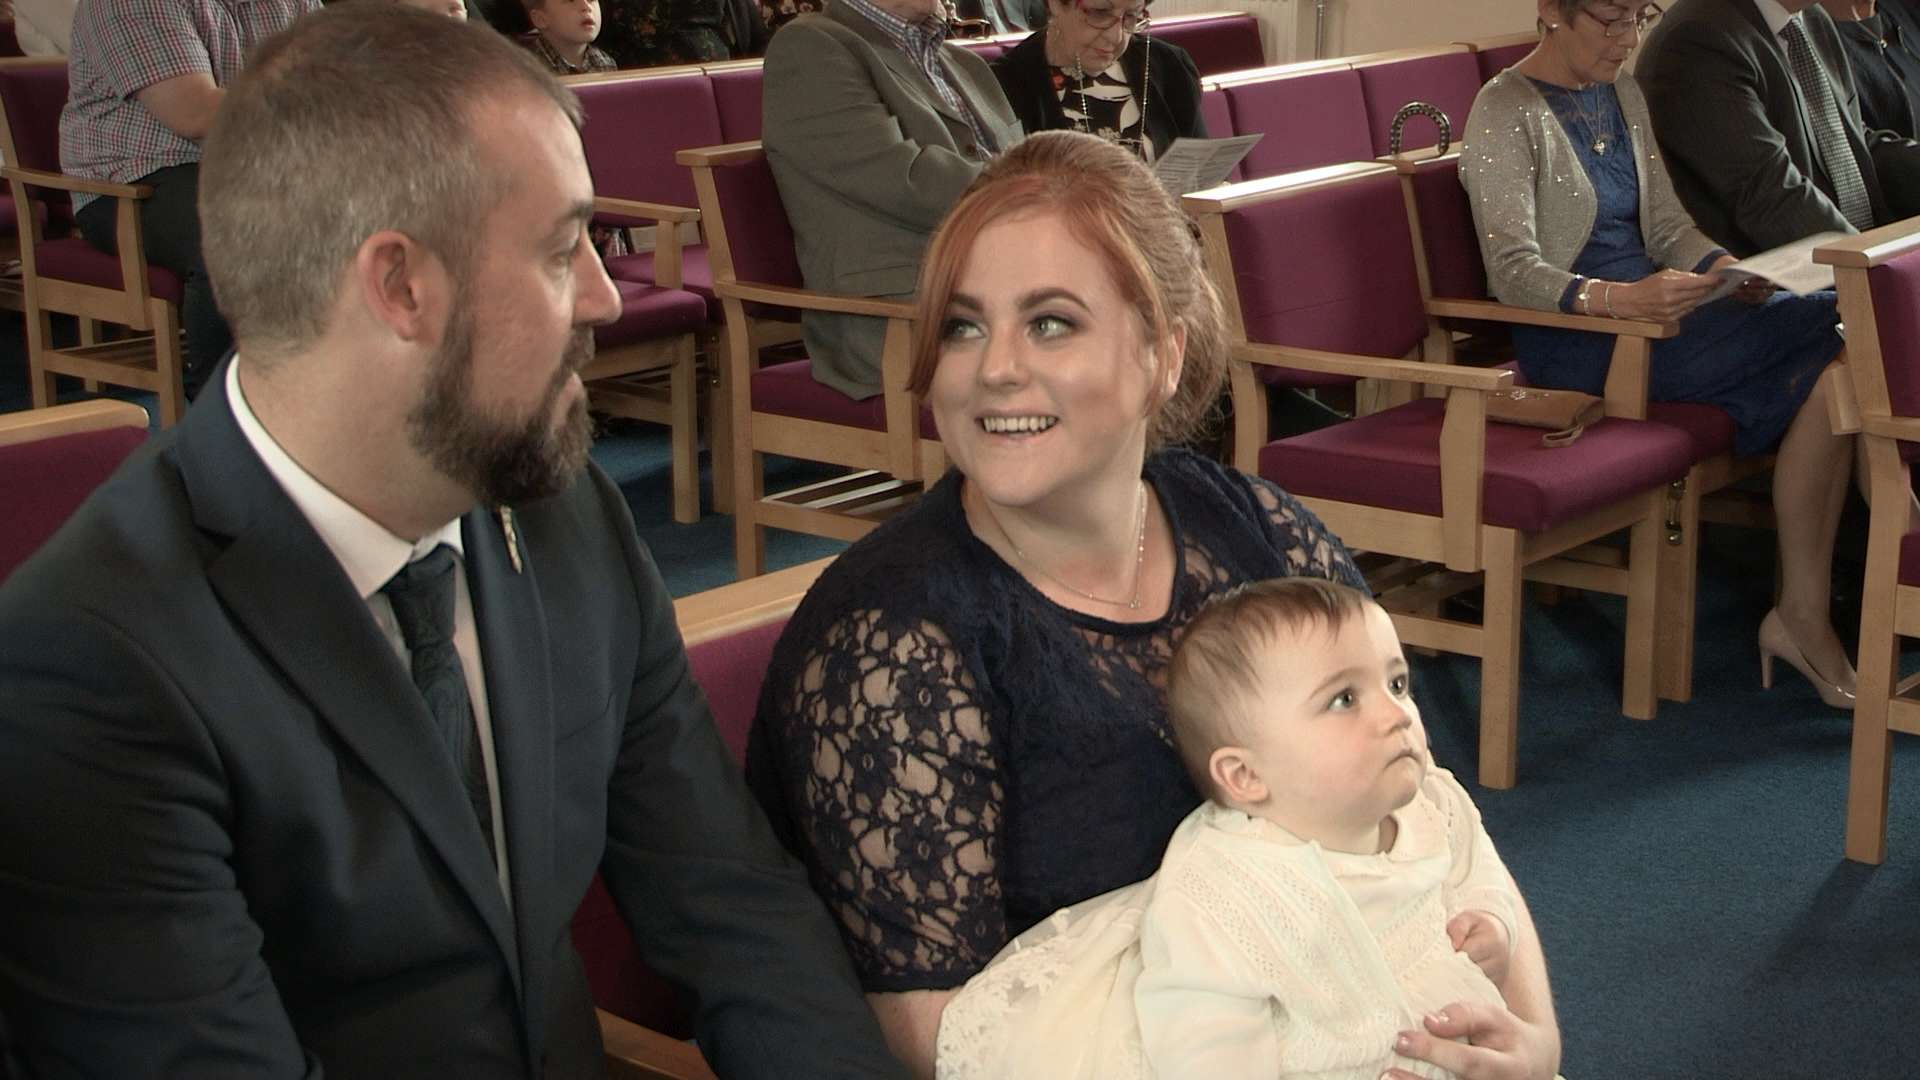 From Weddings to Christening Videos…